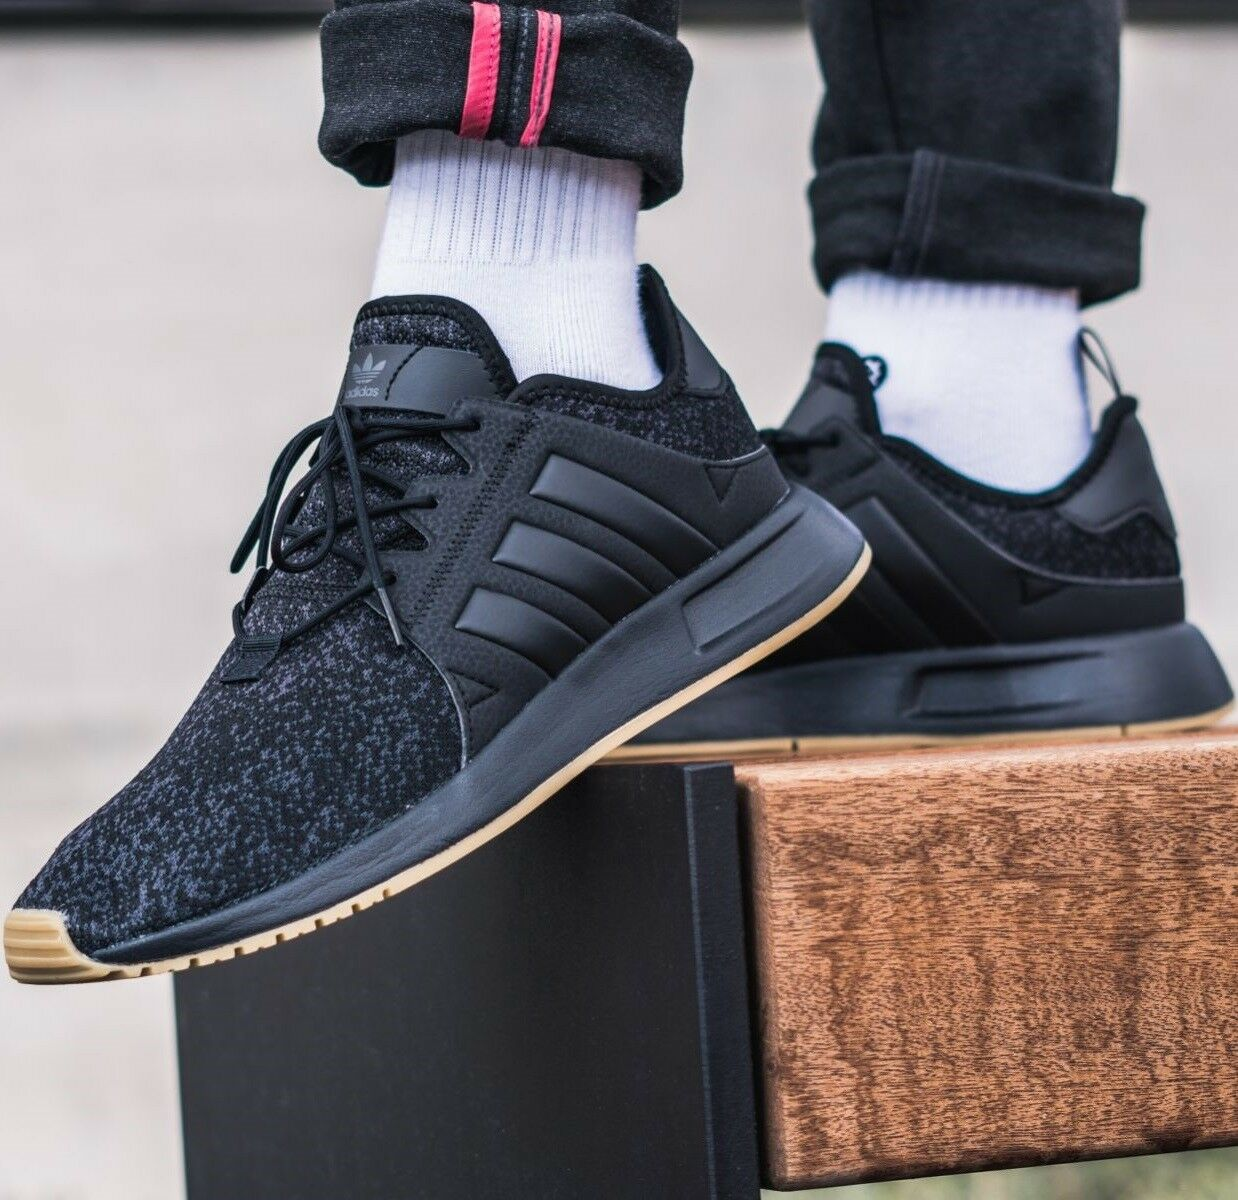 ADIDAS ORIGINALS X PLR Black/Gum LIFSTYLE MEN'S RUNNING SHOES COMFY LIFSTYLE Black/Gum SNEAKERS 817924